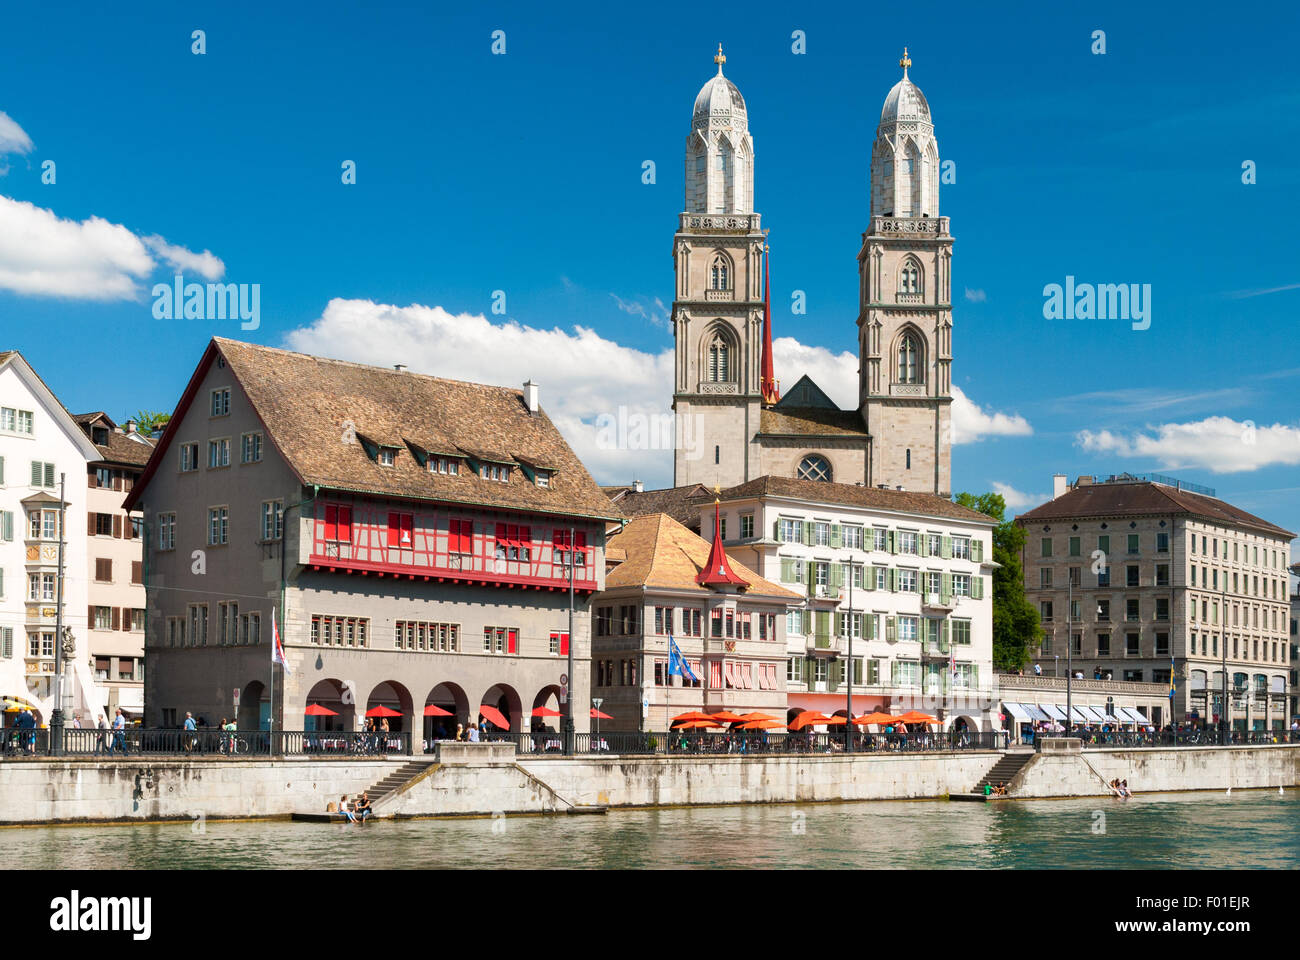 View of Zurich city center; the church in the background is the cathedral - Stock Image